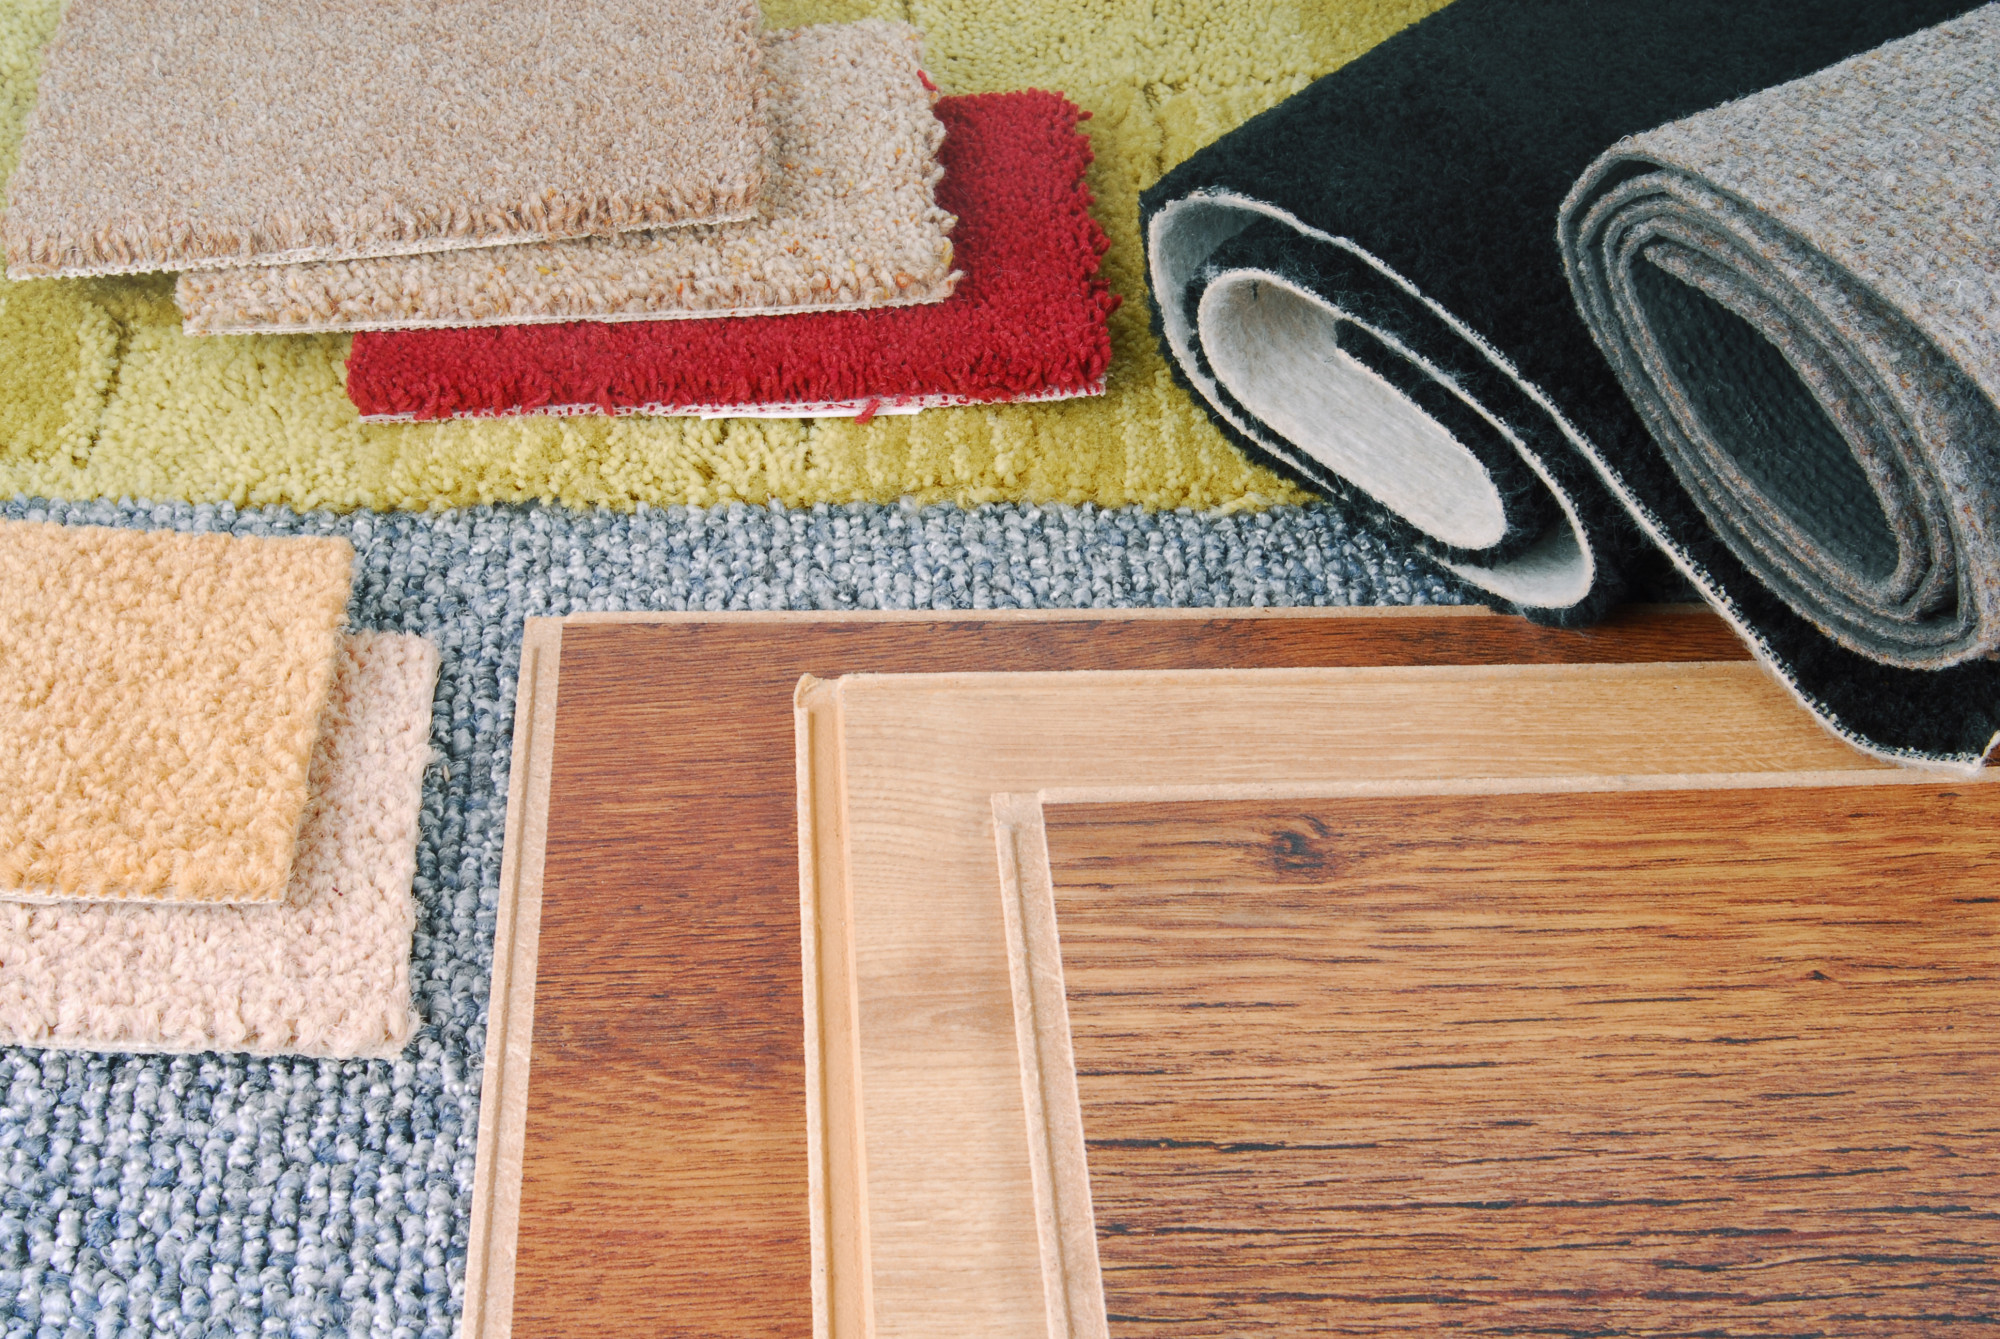 Choosing Flooring Just Got Easier! 5 Tips on Making the Right Choice